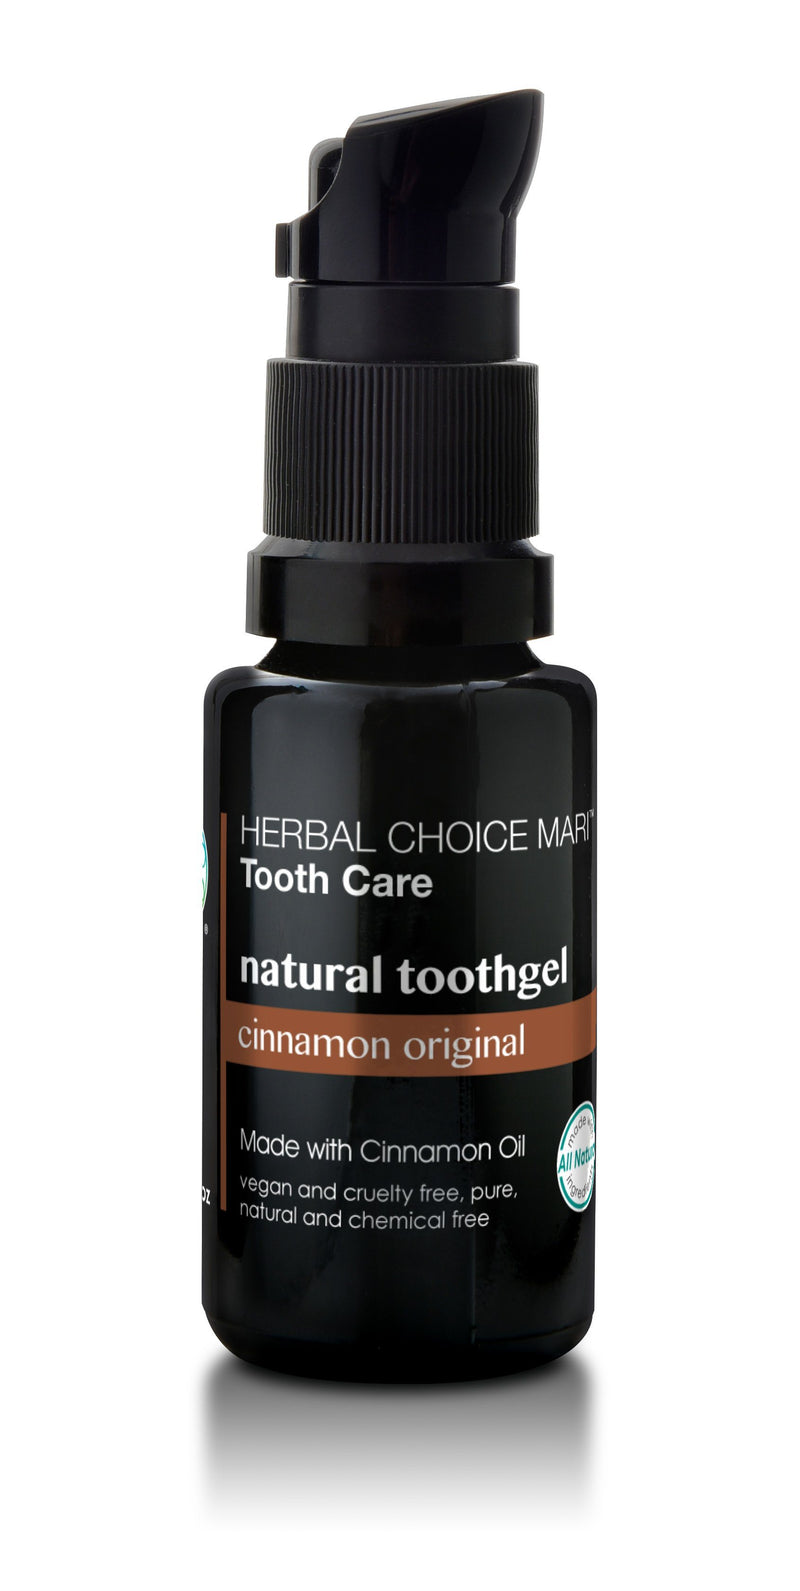 Herbal Choice Mari Natural Toothgel - Herbal Choice Mari Natural Toothgel - 0.5floz